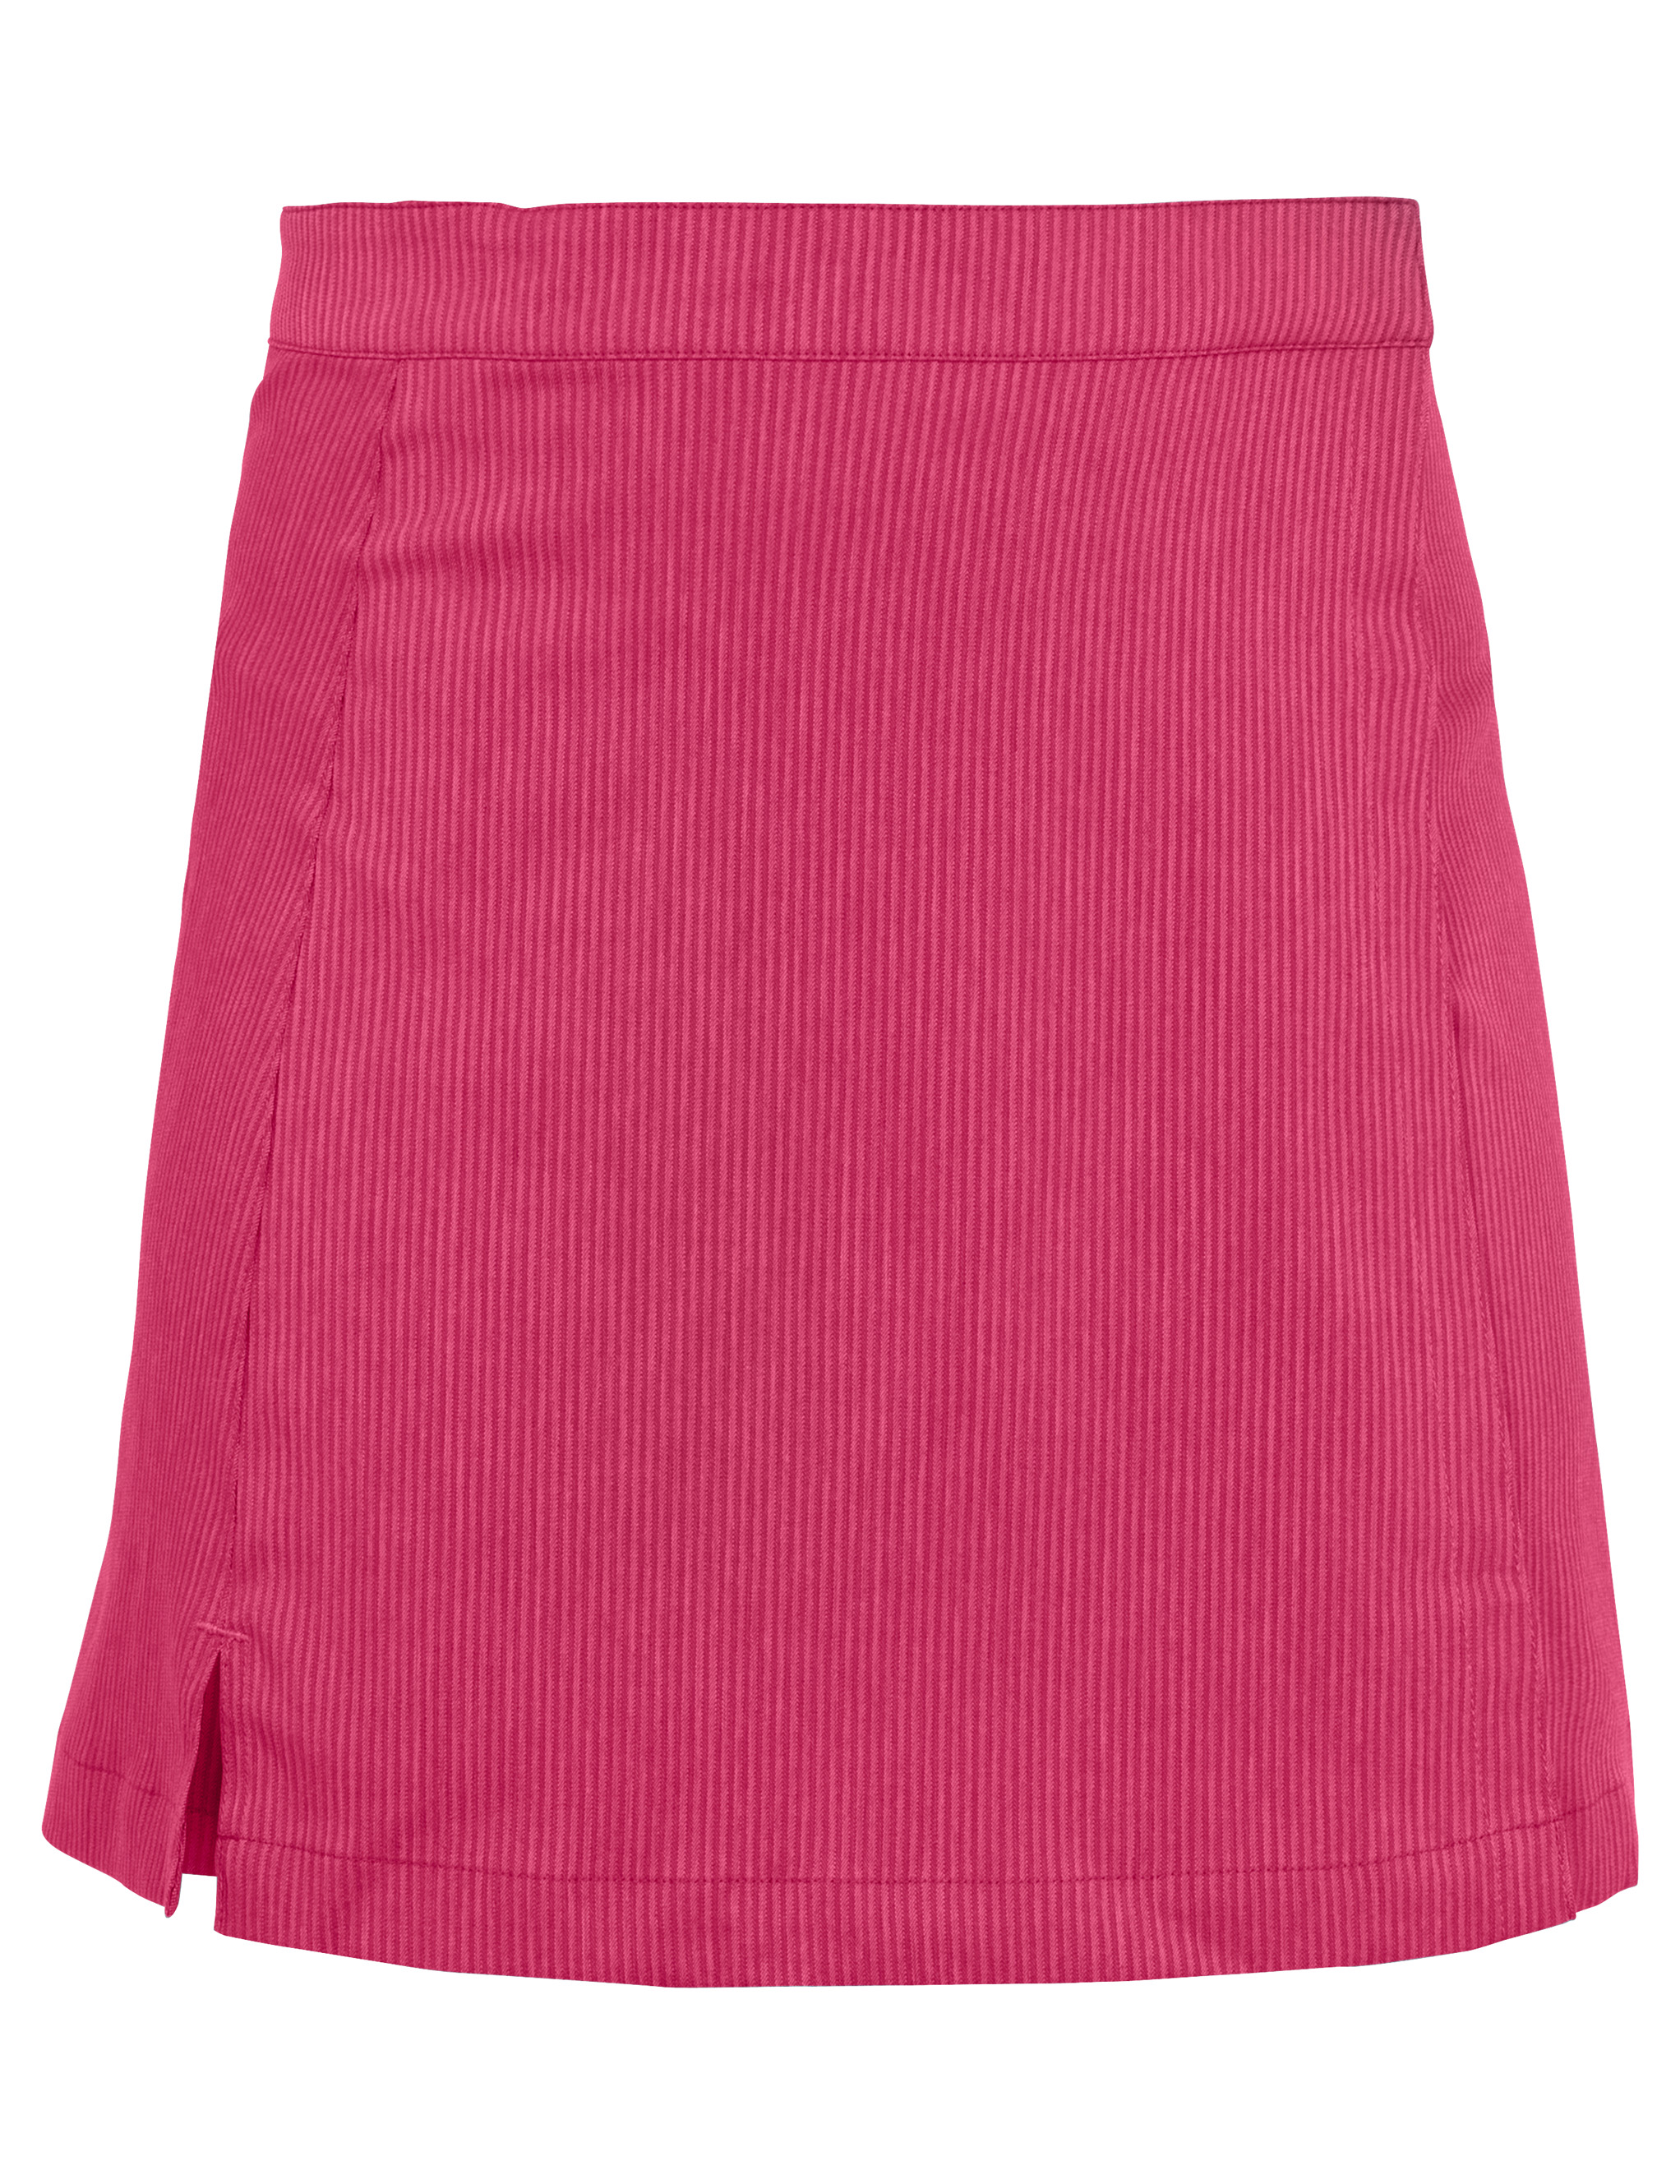 VAUDE Women´s Tremalzo Skirt grenadine Größe 34 - schneider-sports